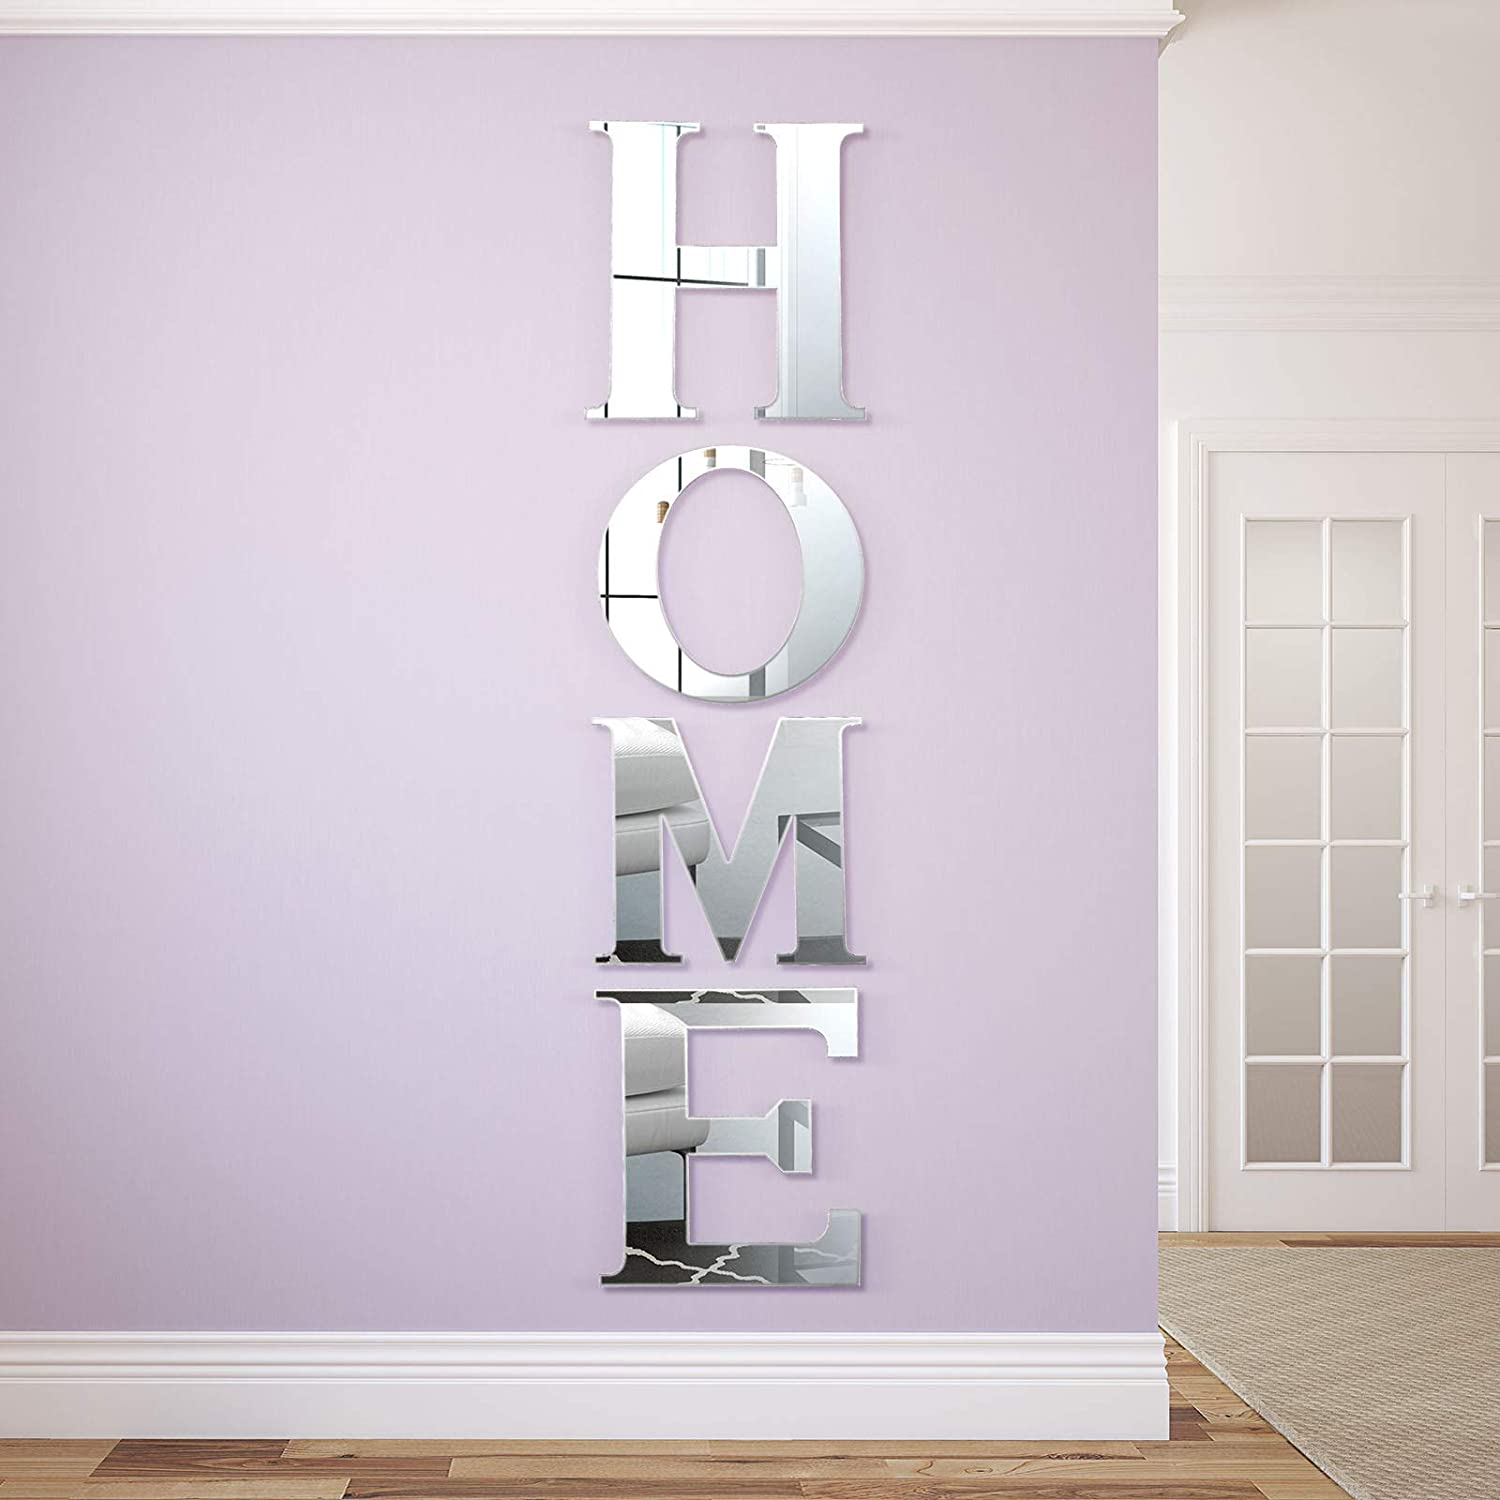 Coneedy 4 Pieces Acrylic Home Sign Letters Family Farmhouse Wall Decor Acrylic Decorative Mirror Wall Stickers for Living Room Bedroom Kitchen Home Modern Decorations, 11 x 10 Inch (Silver)